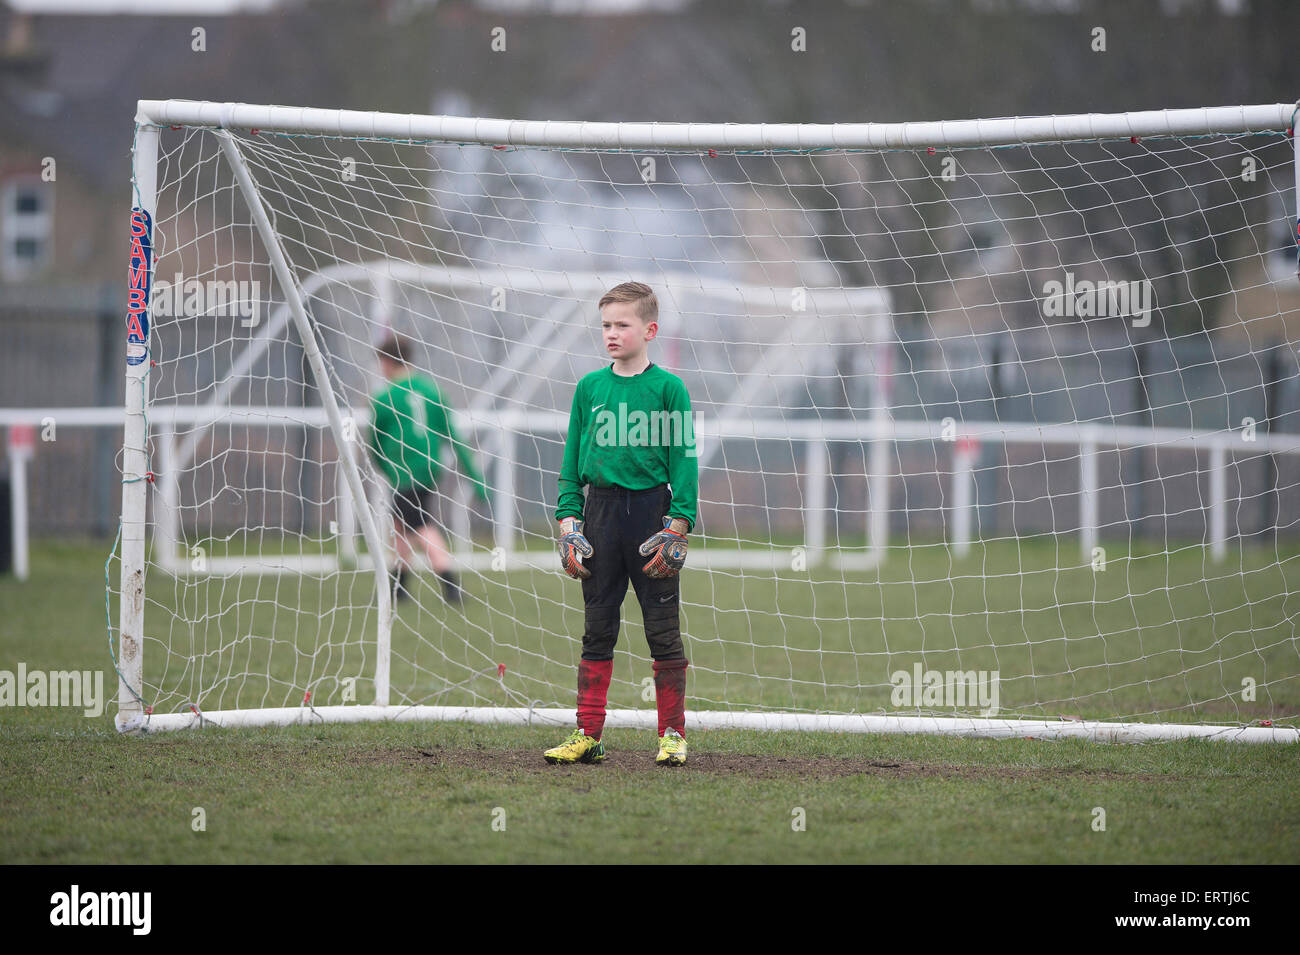 Young boy playing in goal for his football team - Stock Image